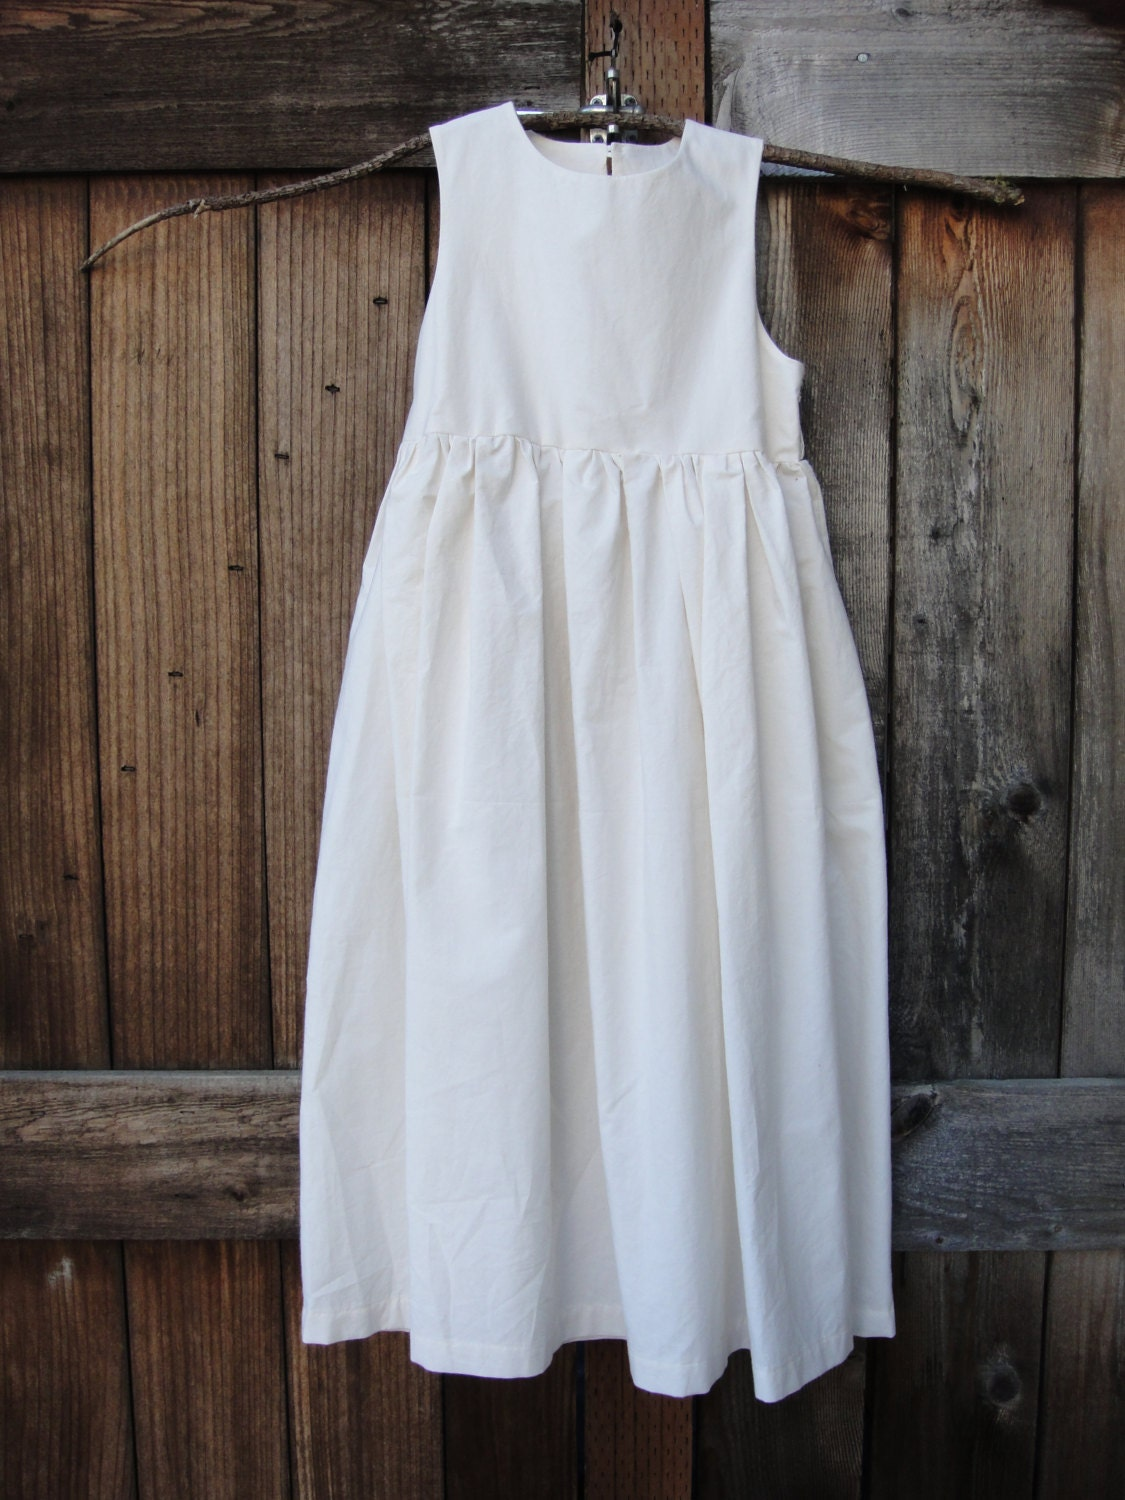 Country Rustic Cotton Flower Girl Dress Size 2T 5T